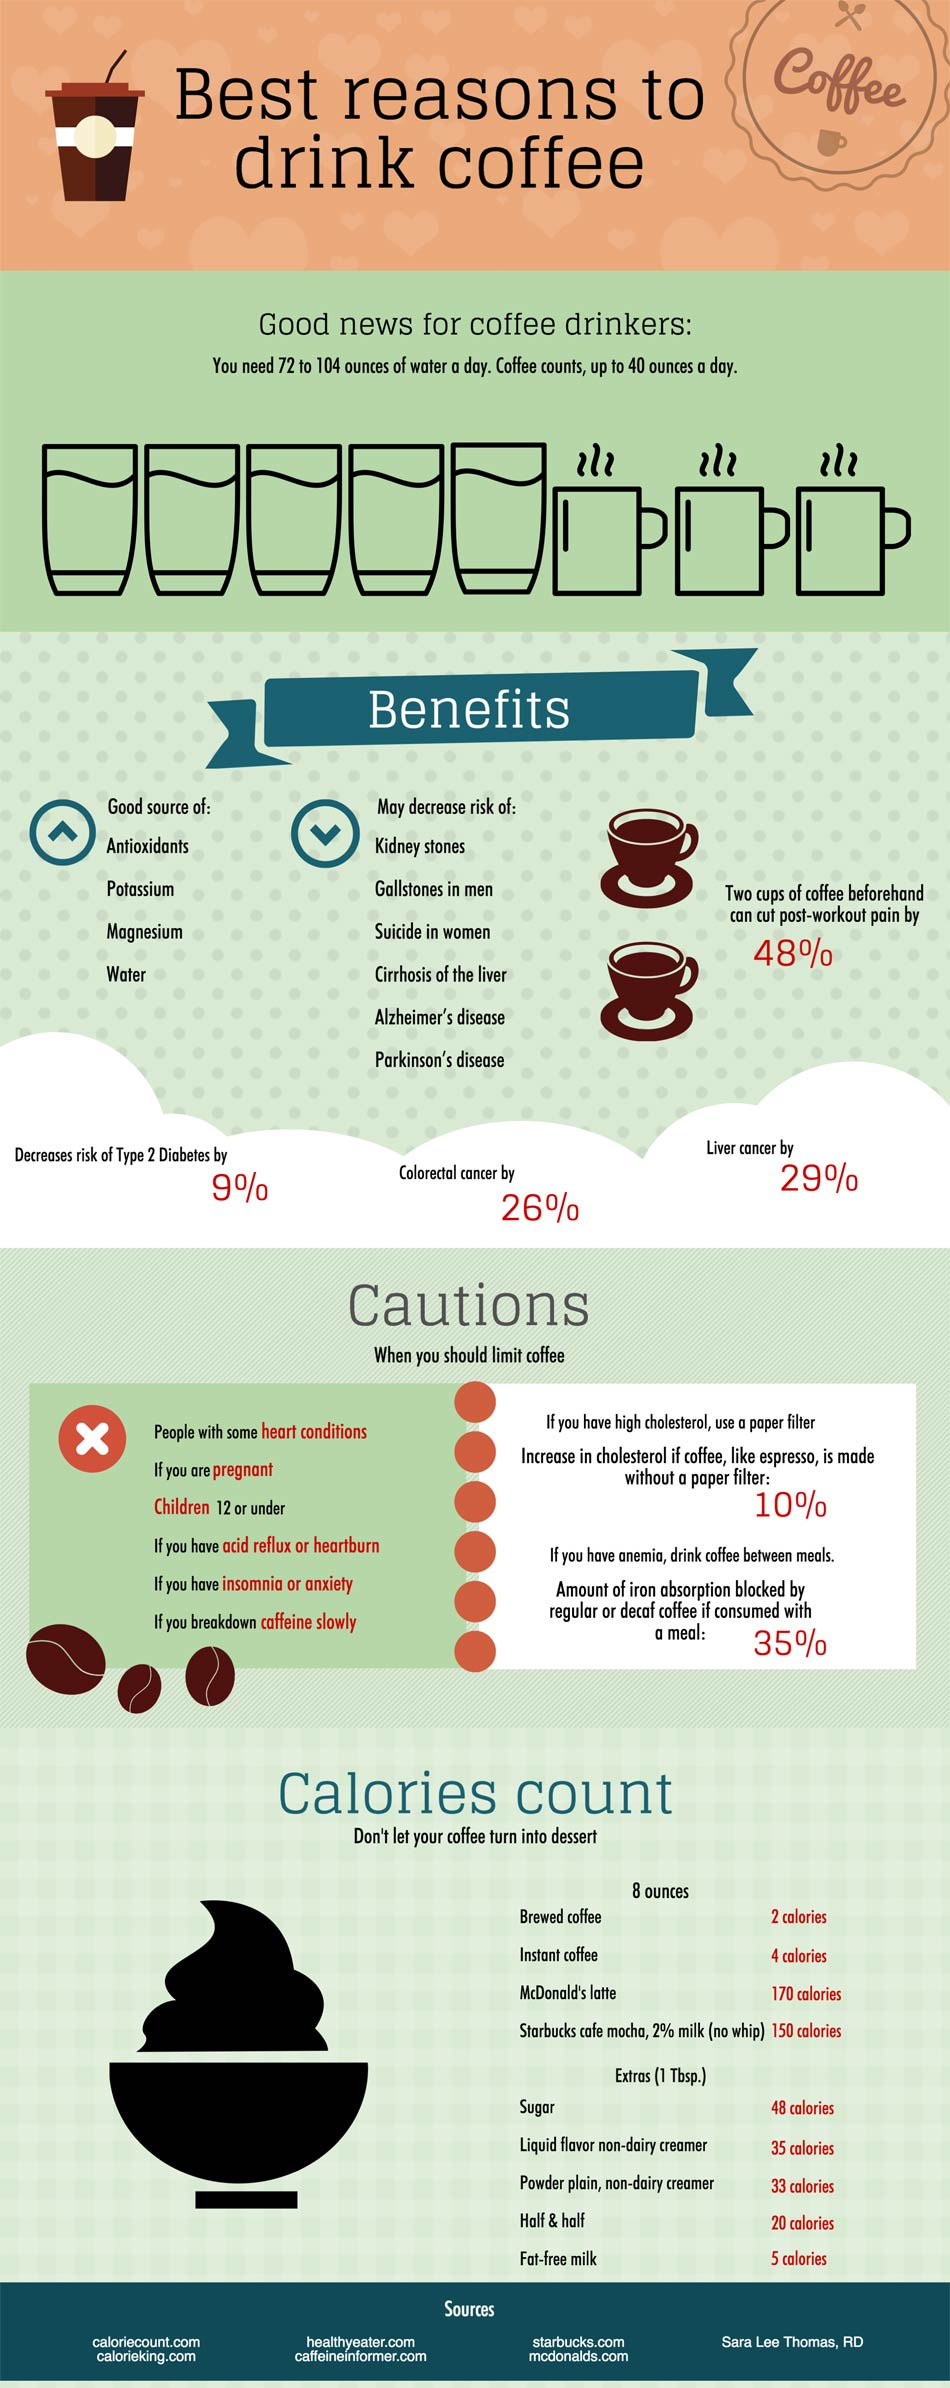 Best Reasons to Drink Coffee - Infographic